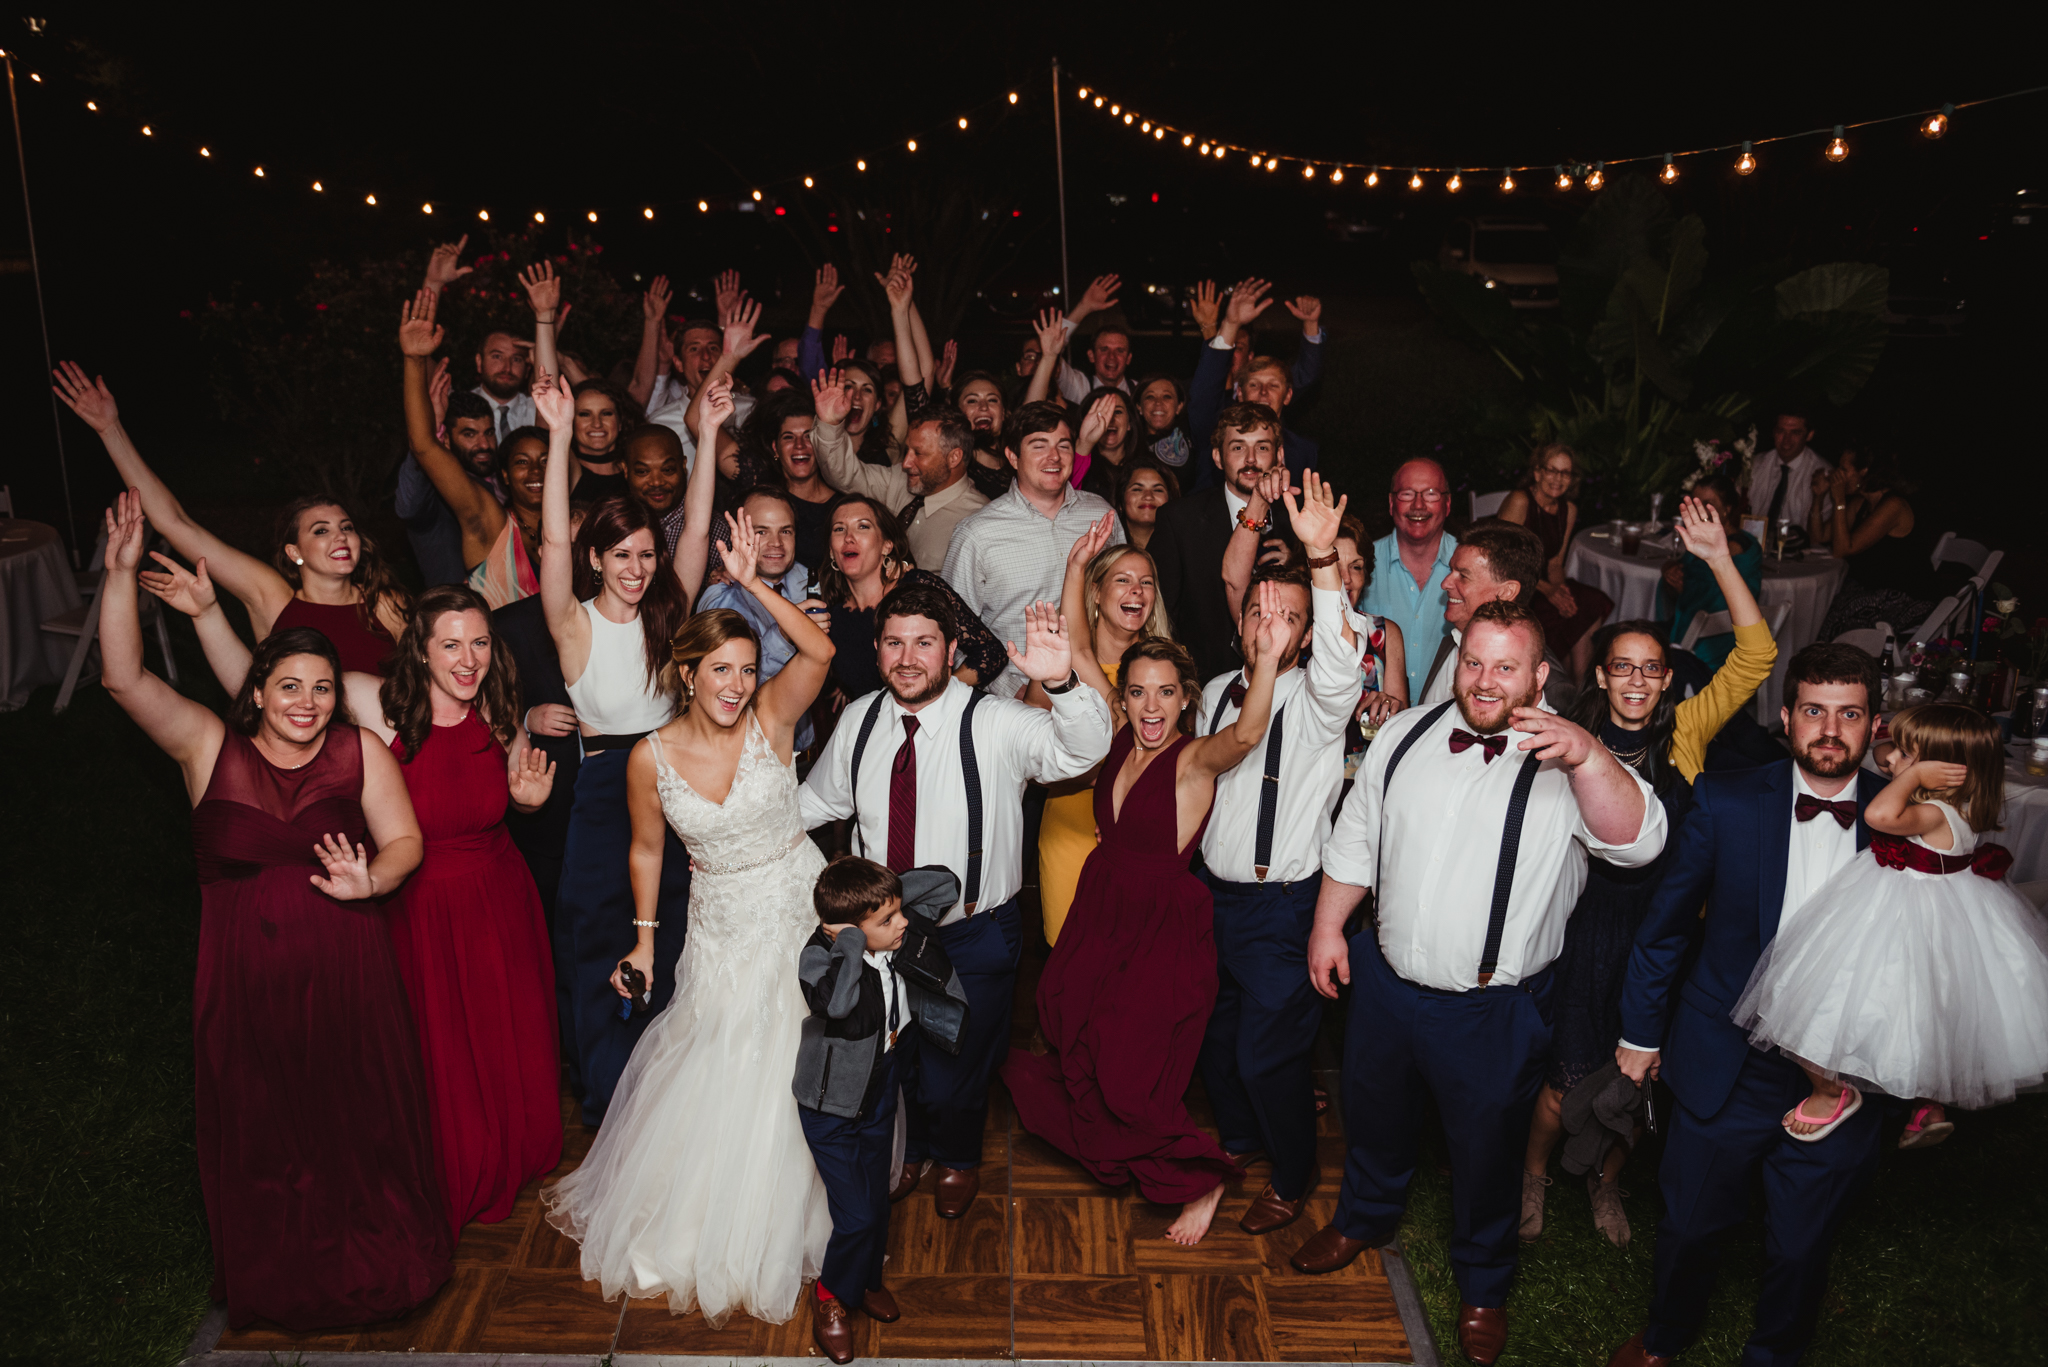 all-the-wedding-guests-in-a-group-picture-on-the-dance-floor.jpg